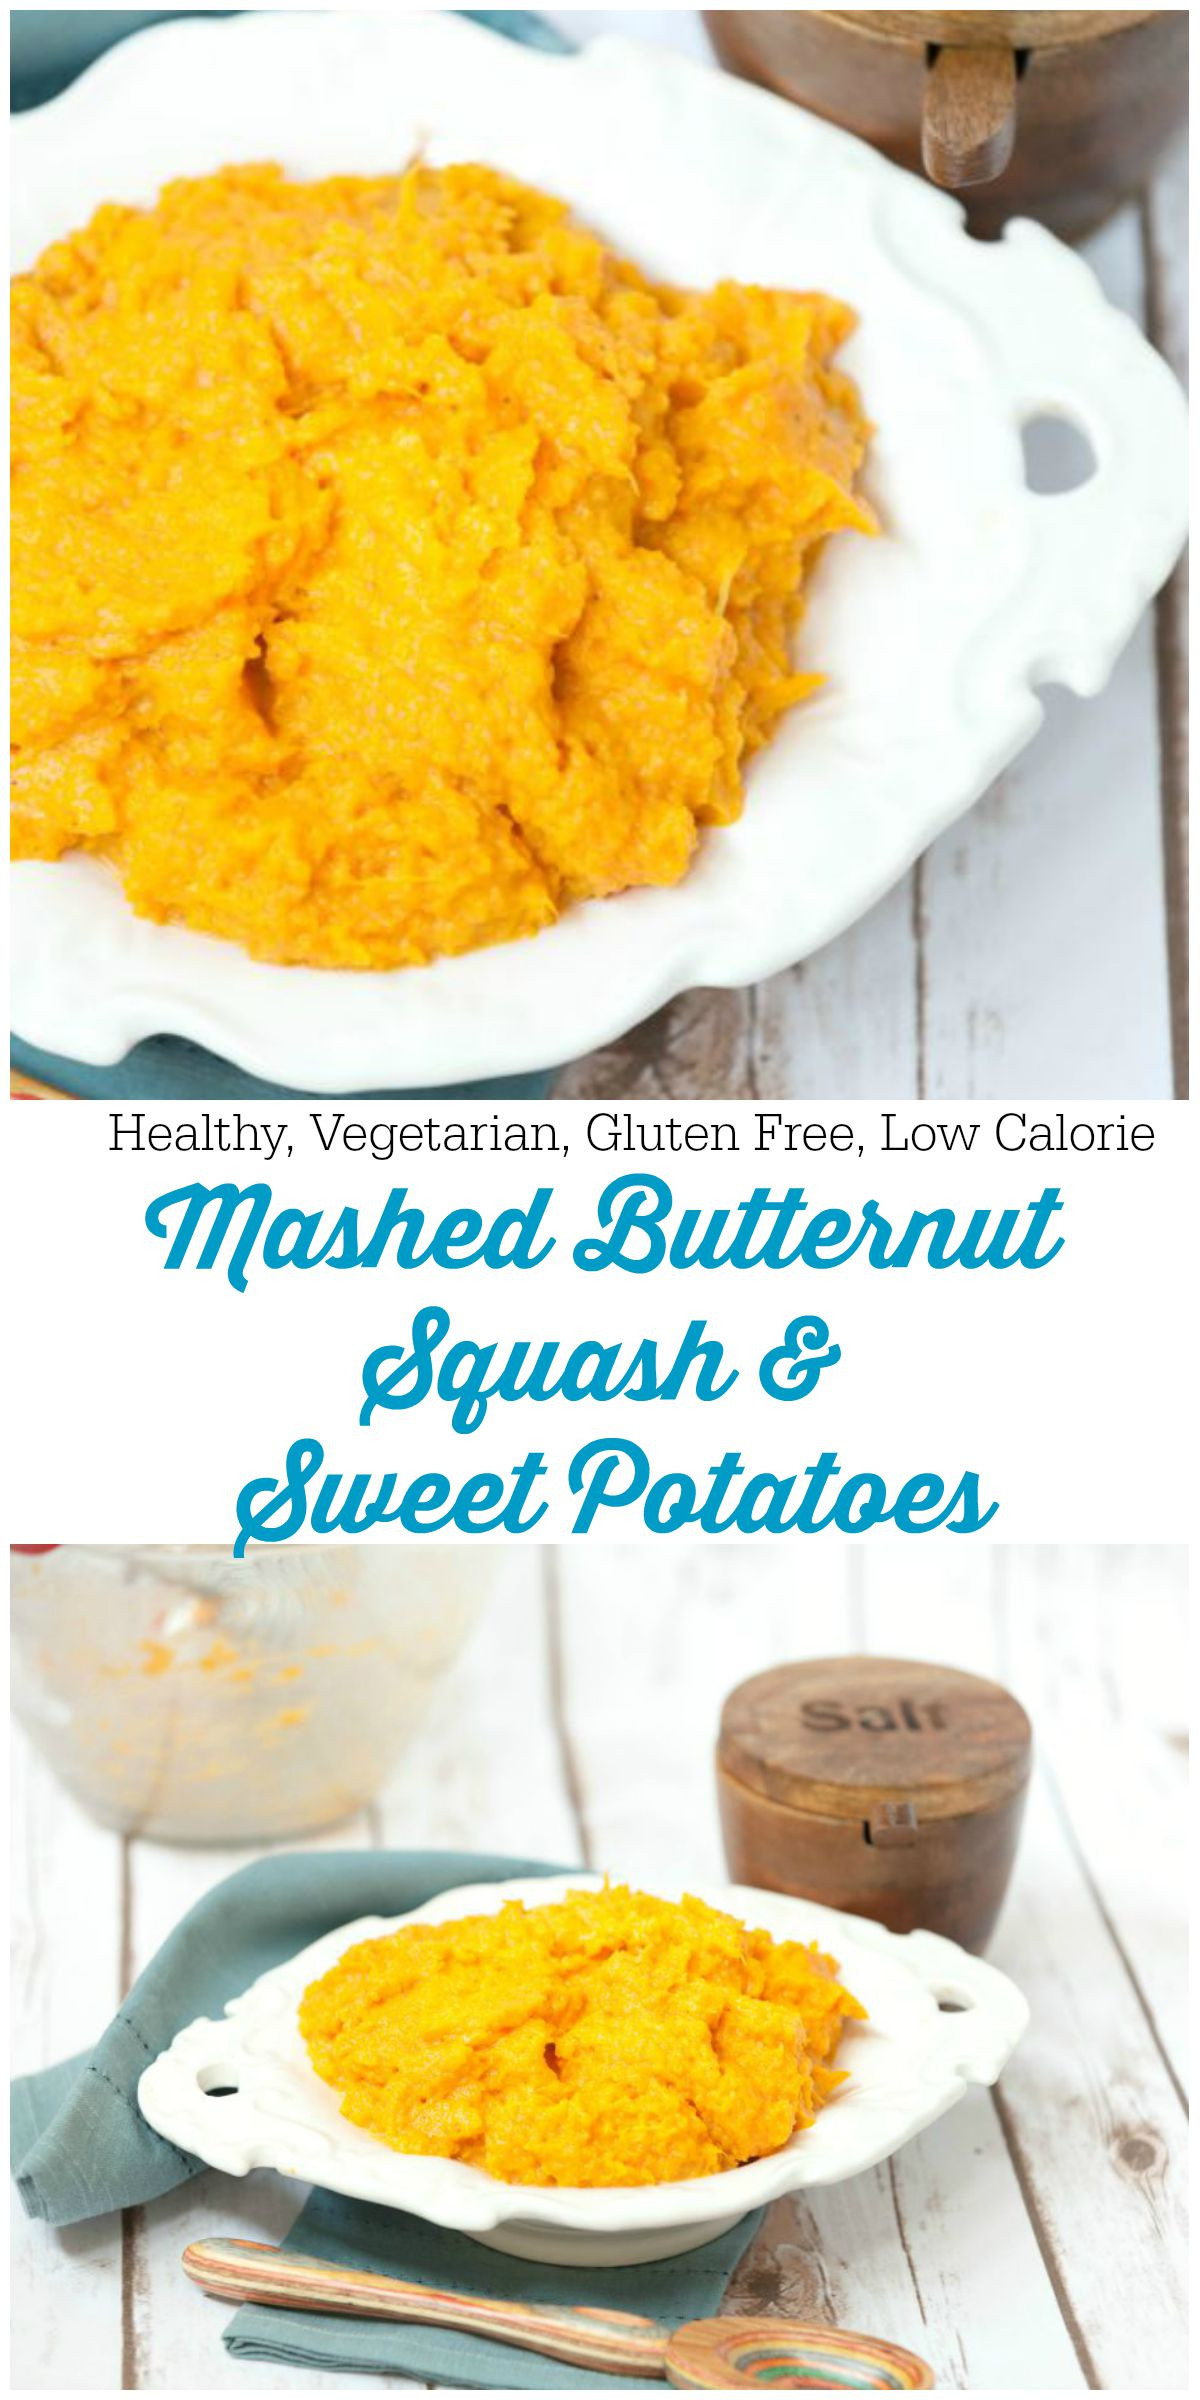 Mashed Sweet Potatoes Recipe Healthy  Healthy Mashed Butternut Squash and Sweet Potatoes